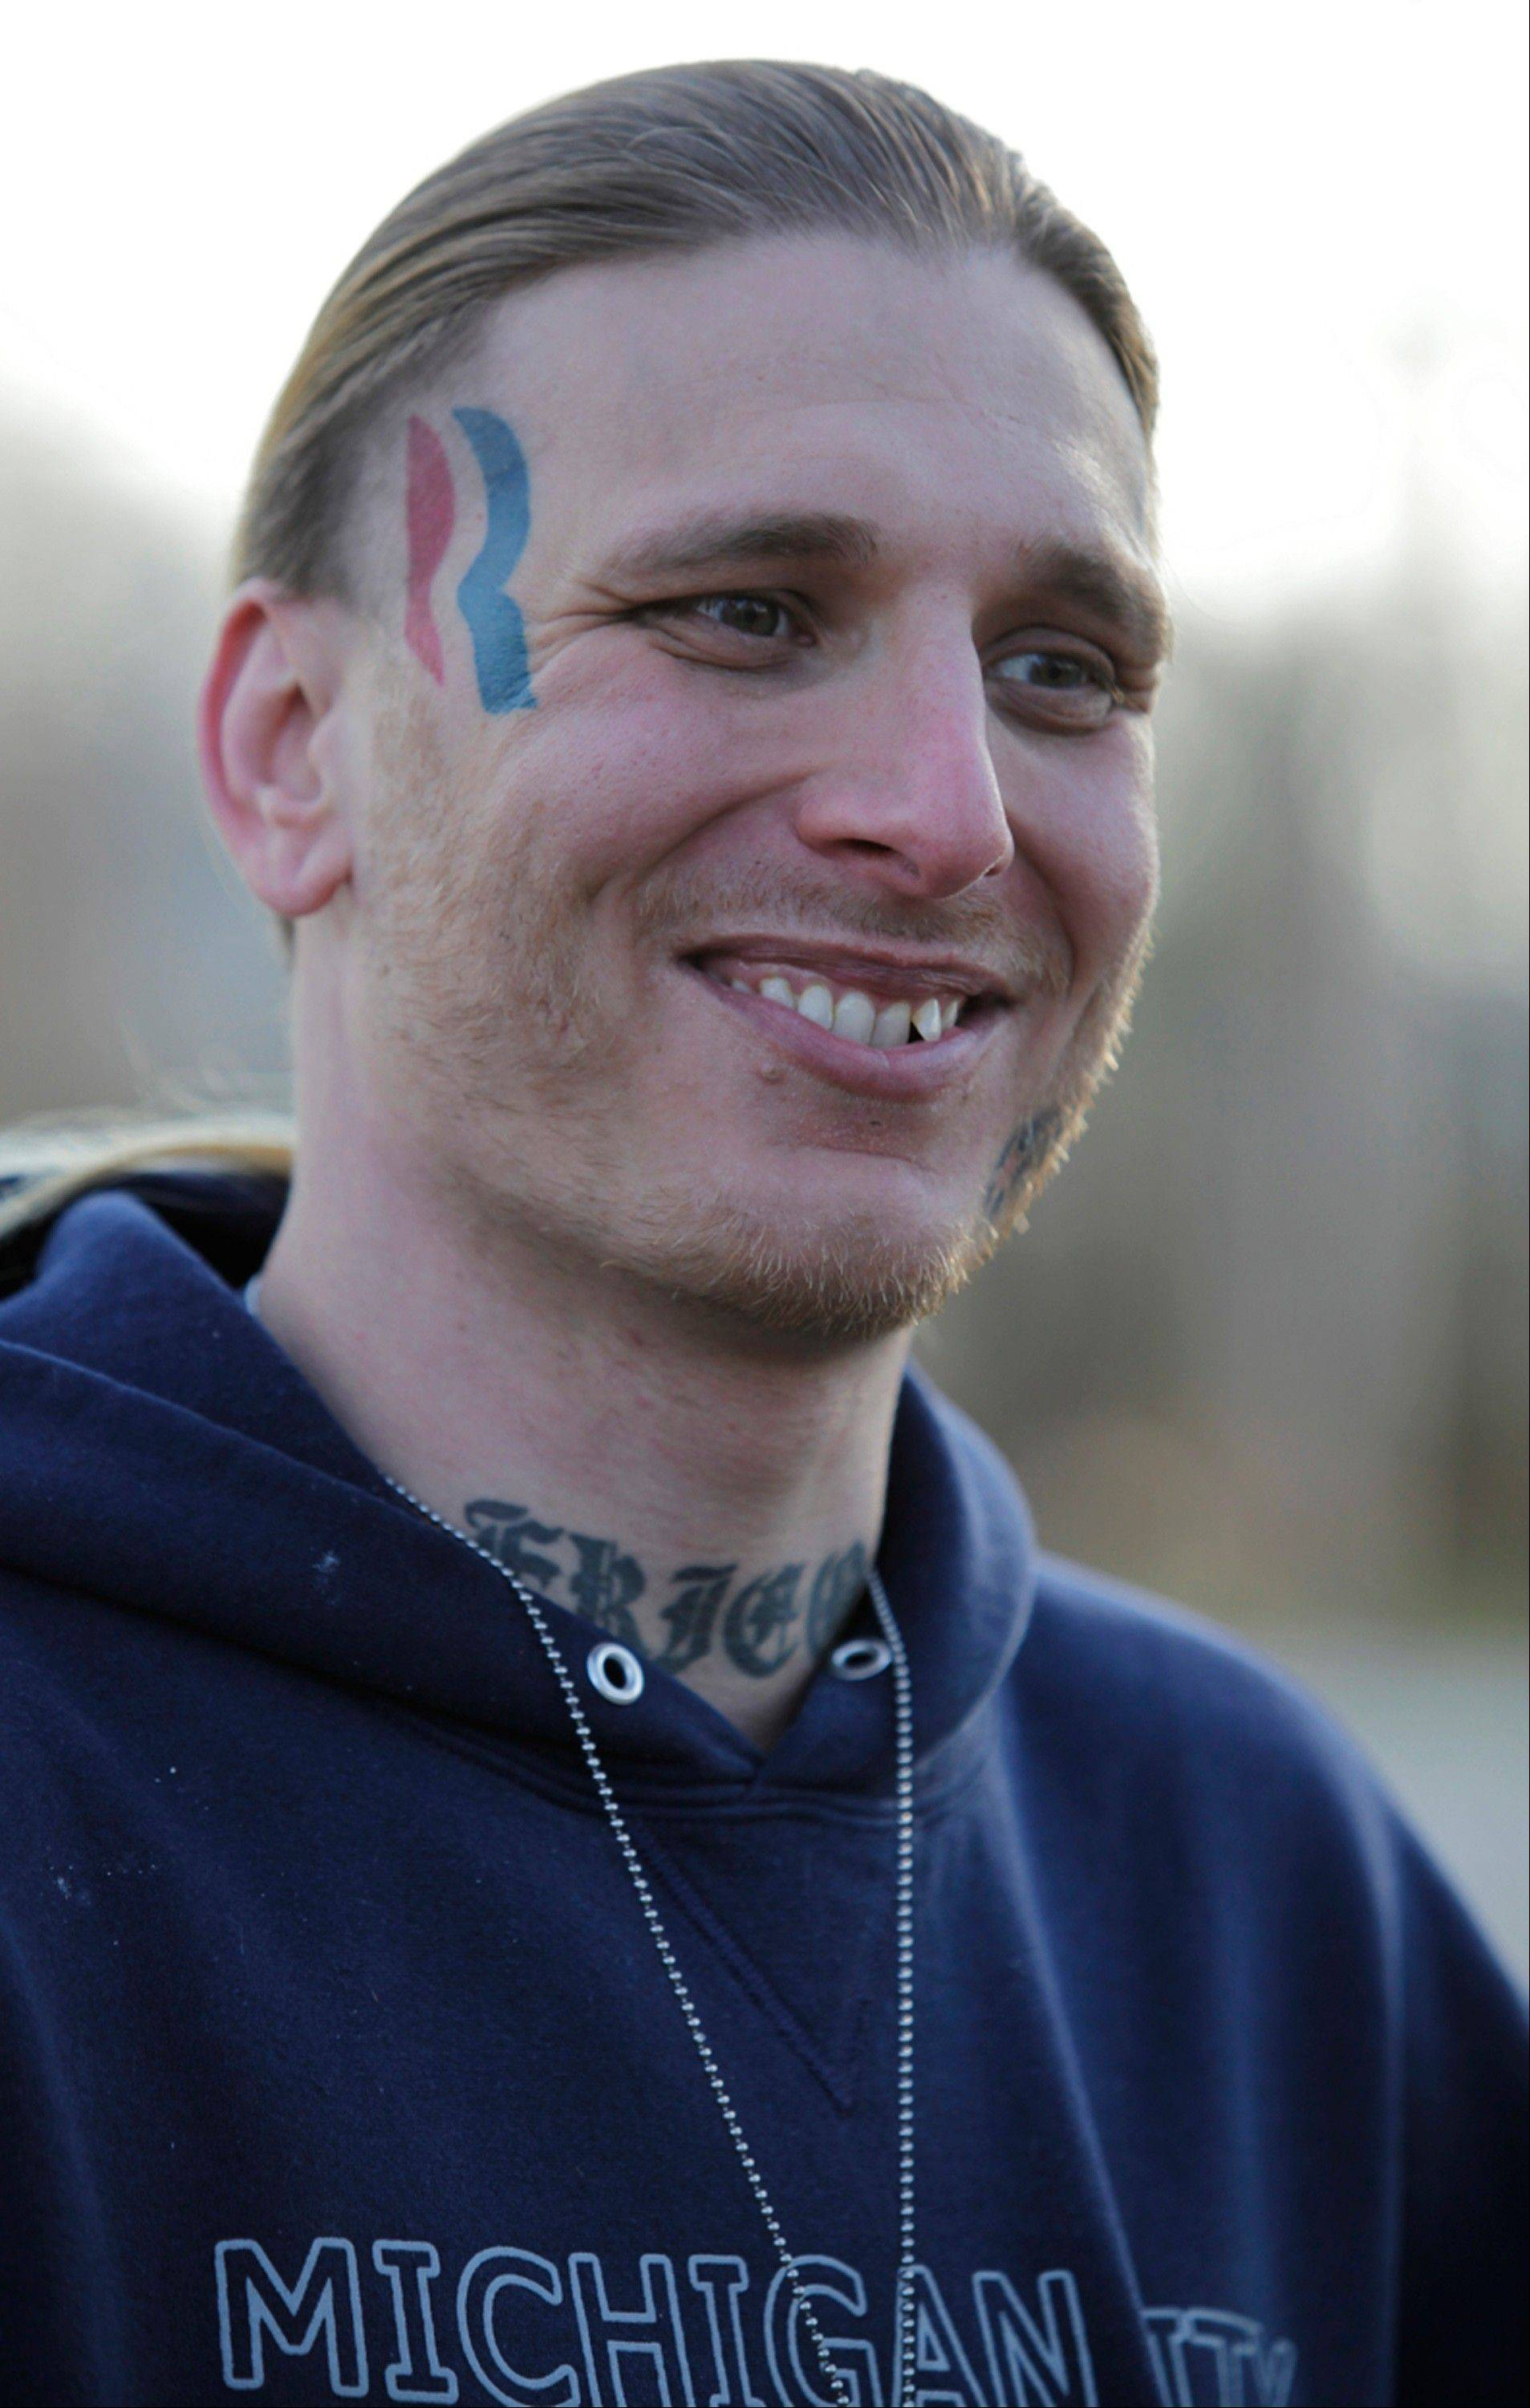 Eric Hartsburg, 30, poses for a photo Friday showing his Romney-Ryan election logo tattoo.